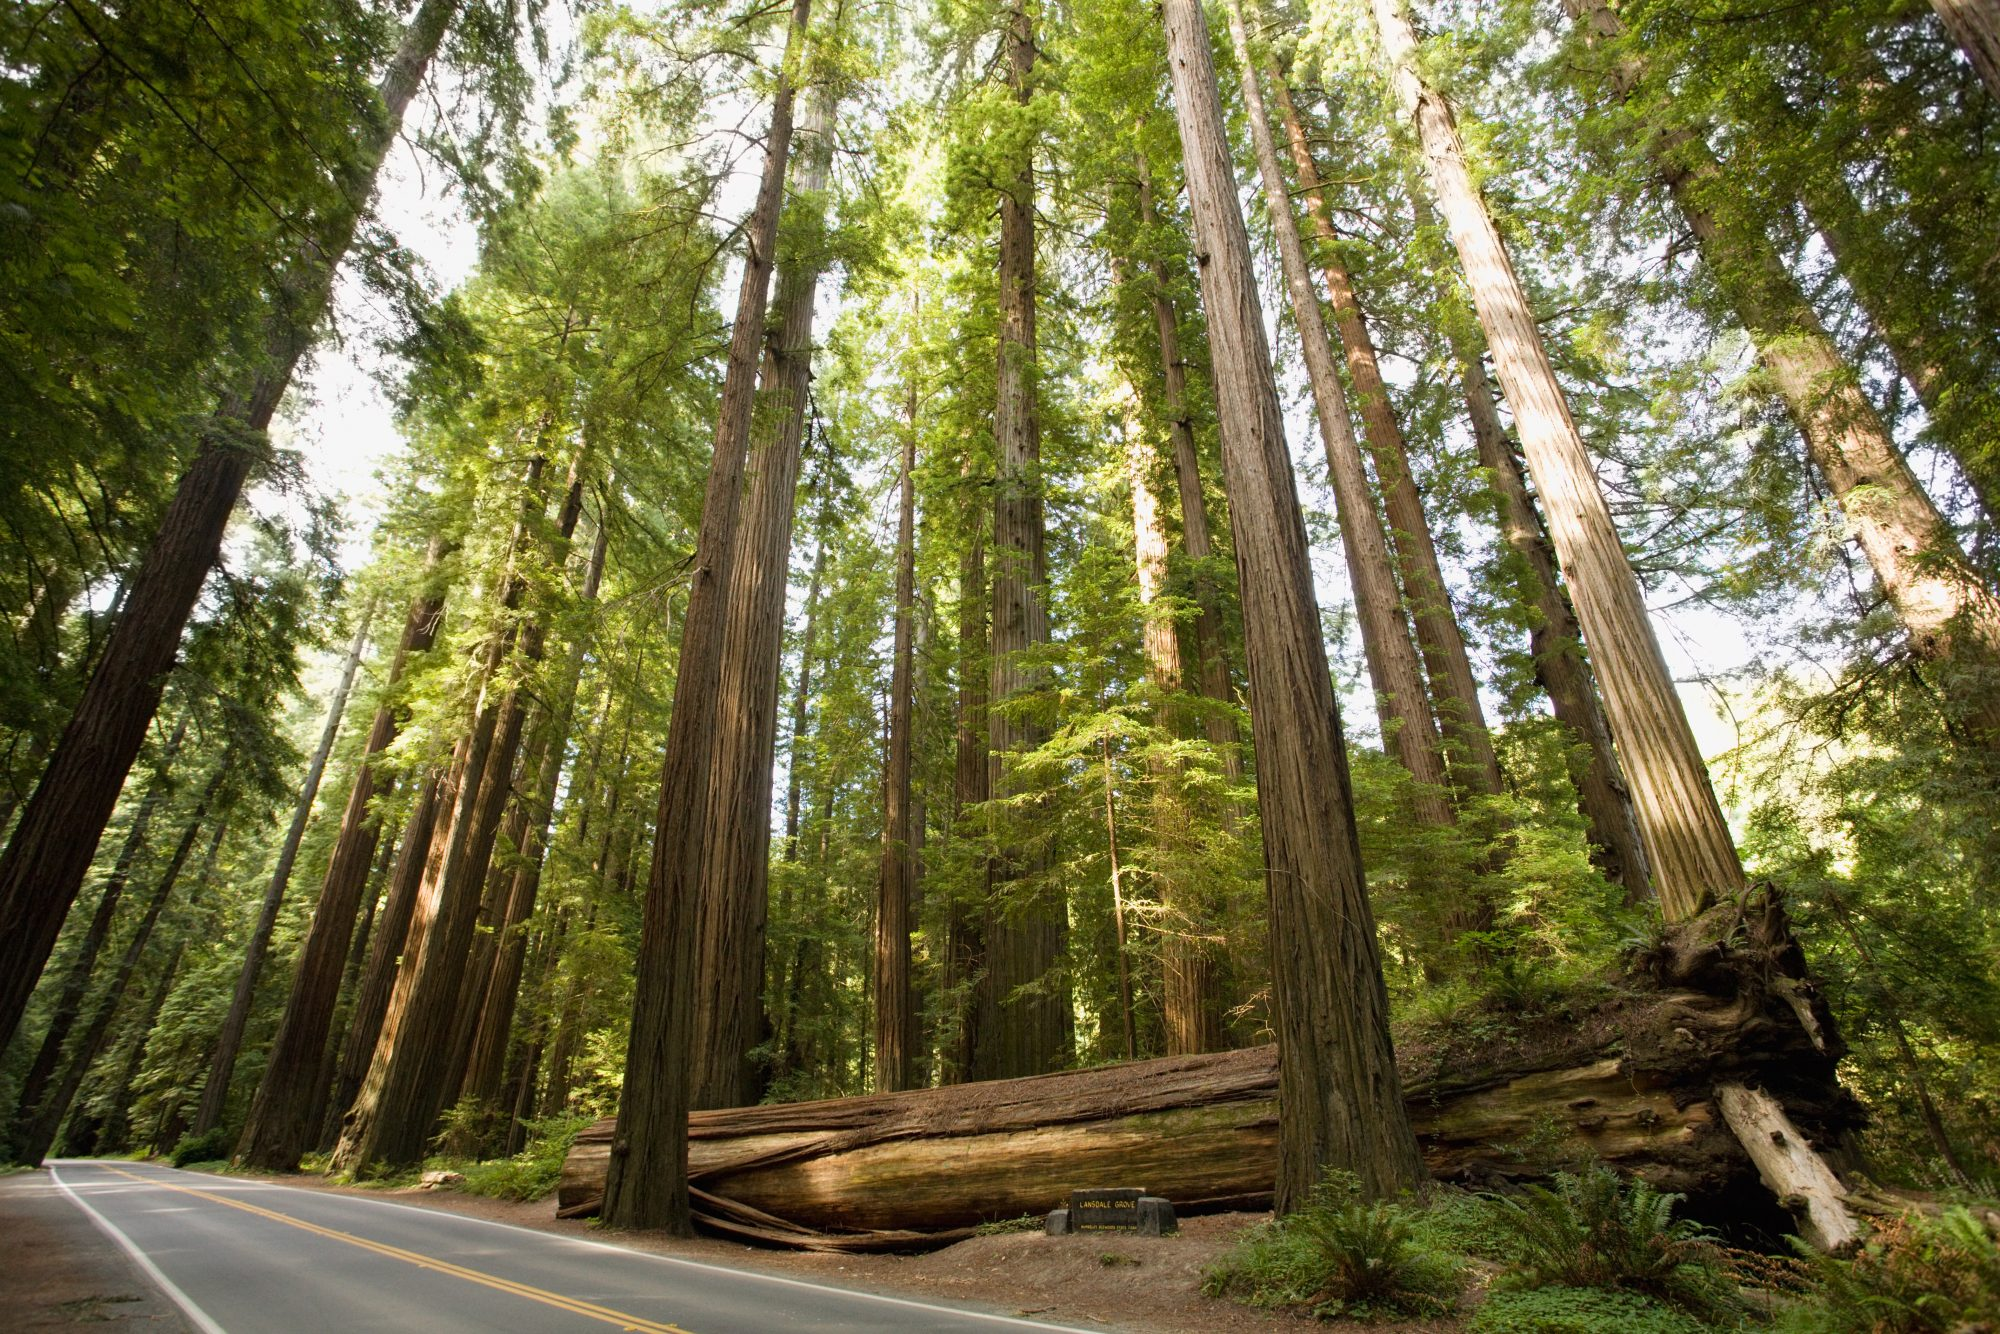 Avenue of the Giants in California